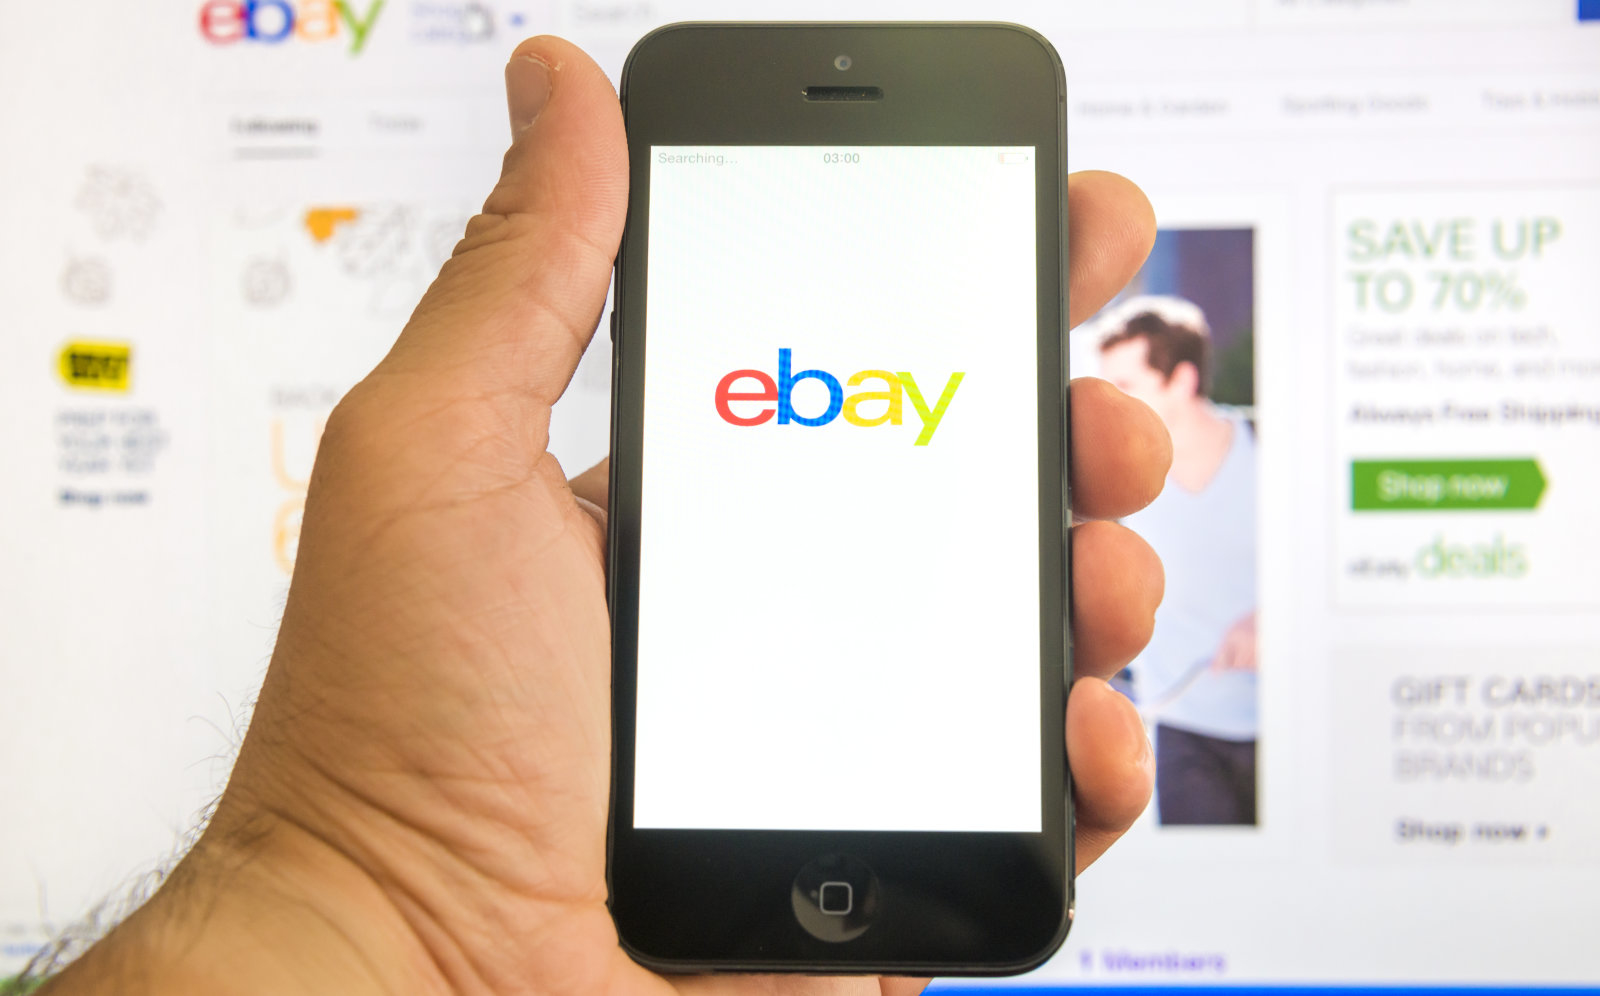 eBay is adding support for Apple Pay, partners with Square